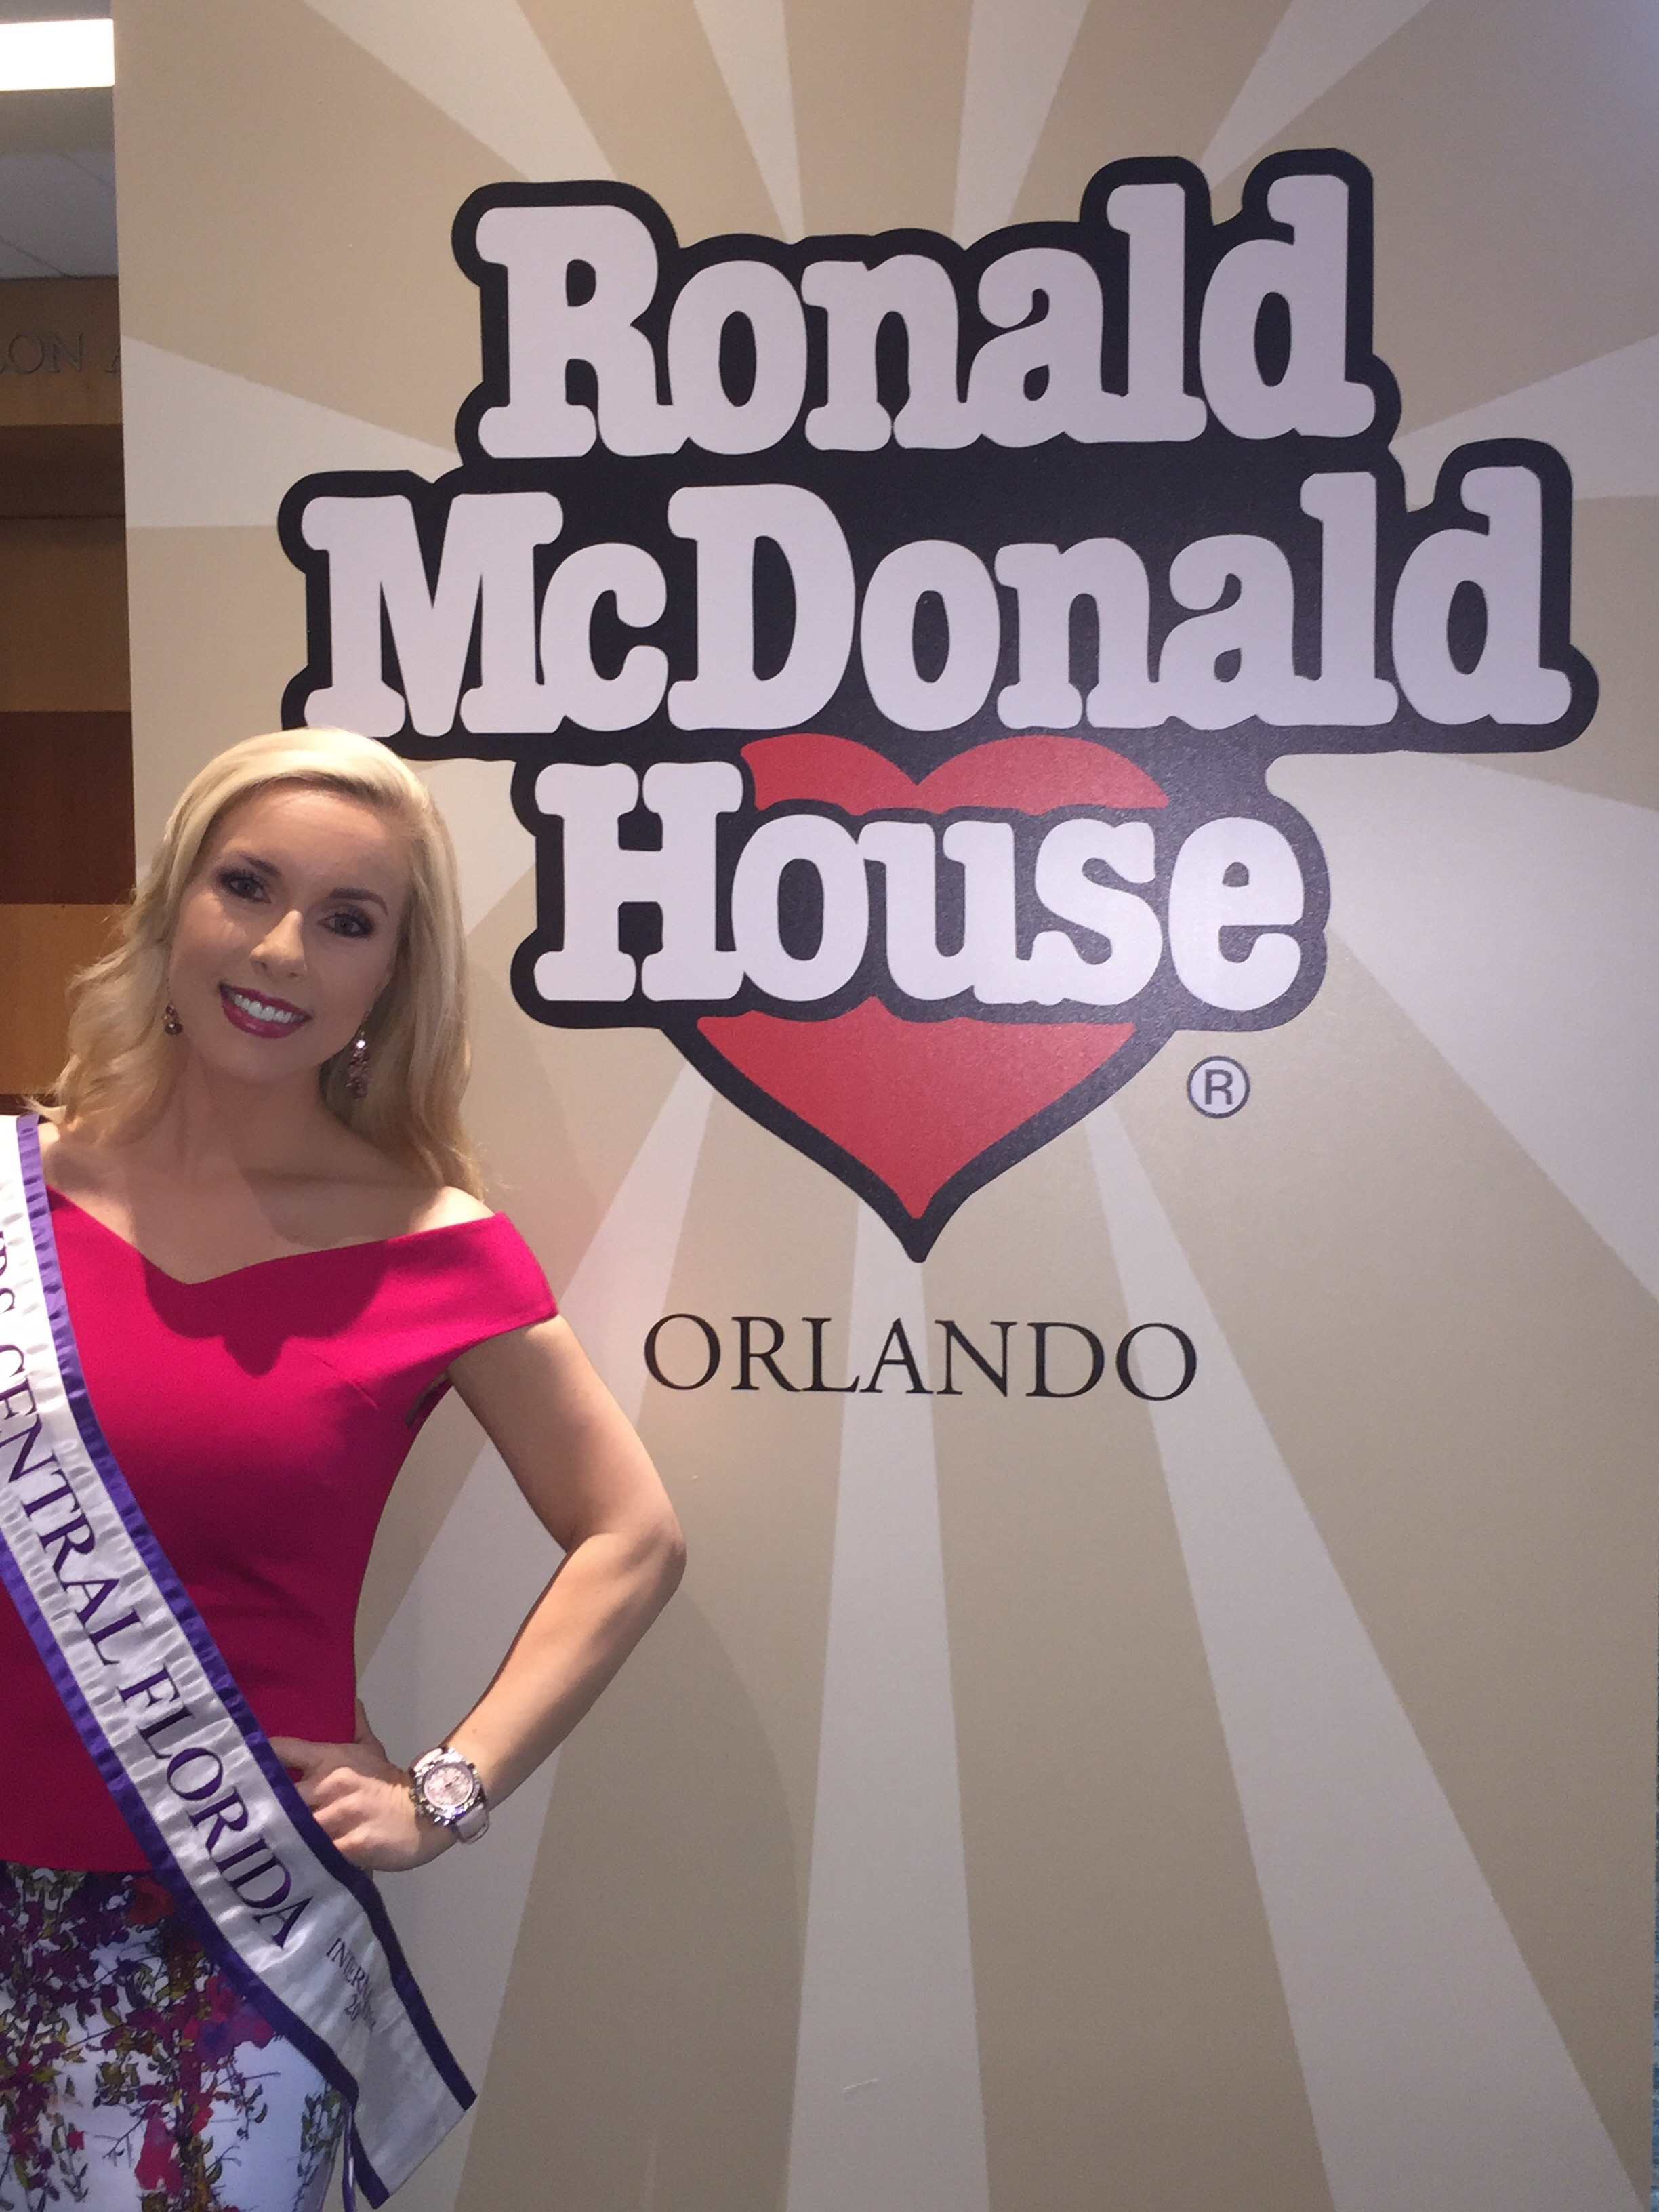 Ronald McDonald House Event